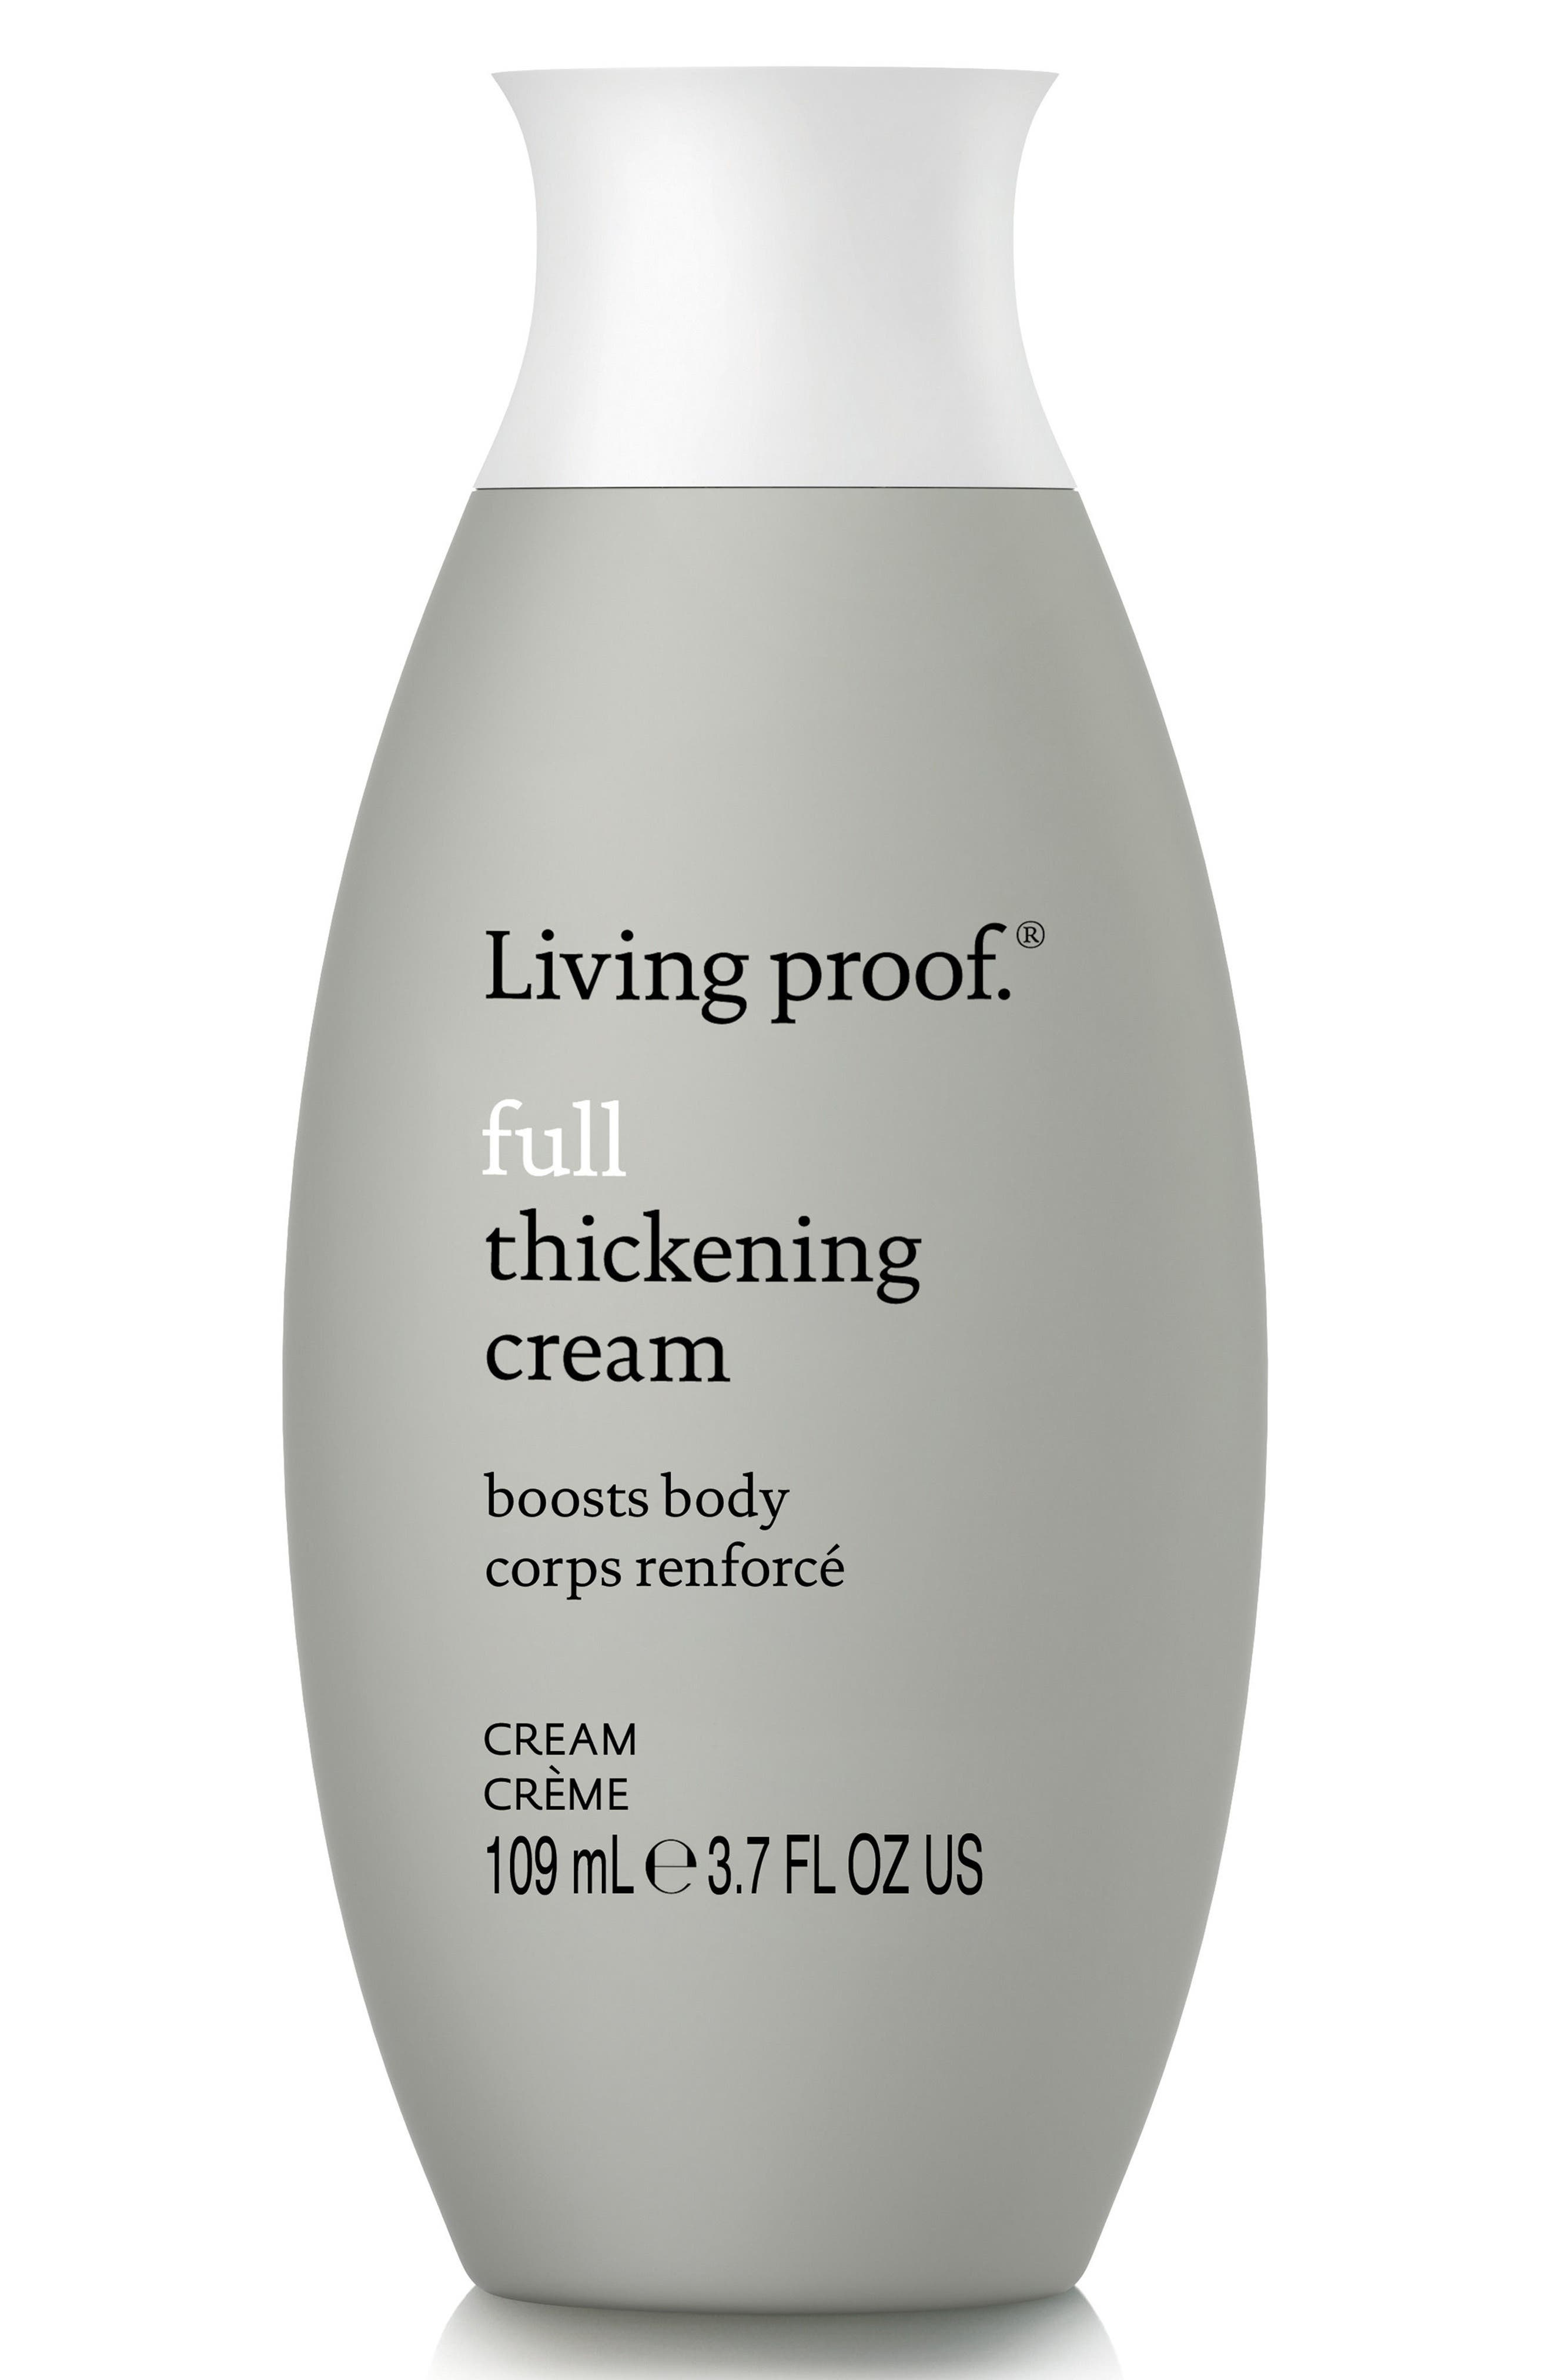 Alternate Image 1 Selected - Living proof® Full Thickening Cream